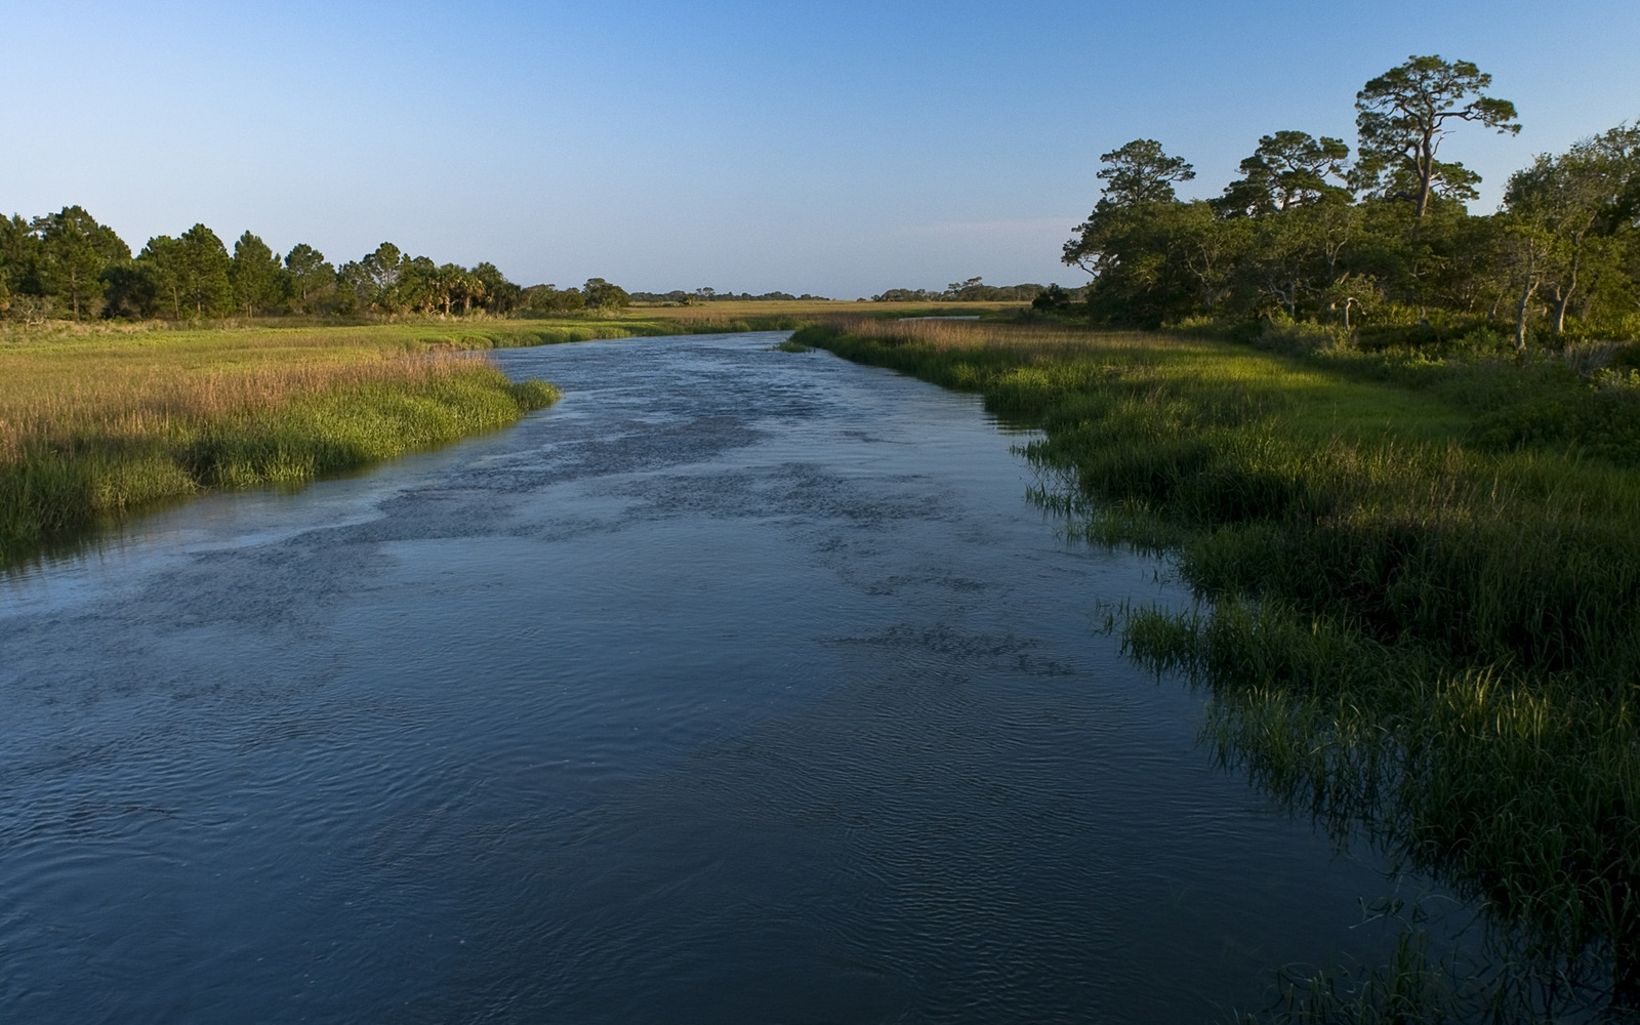 Salt marsh and hammock along Mosquito Creek border on Little St. Simons Island, a 10,000-acre barrier island bordering the Altamaha River Sound in coastal Georgia.